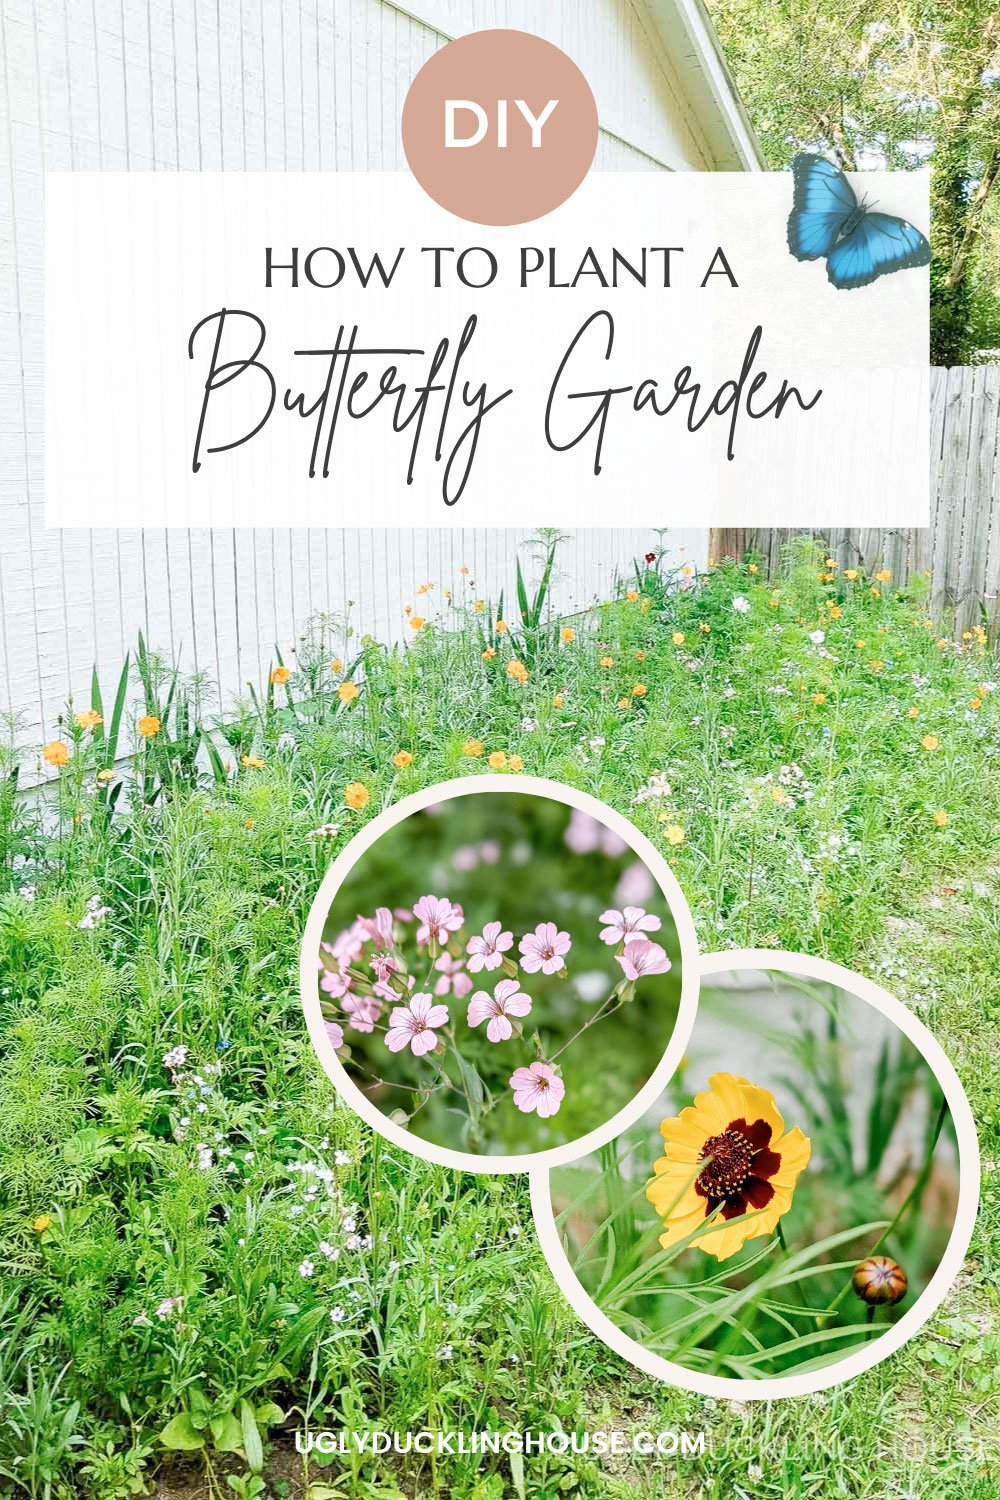 how-to-plant-and-grow-a-butterfly-garden-5-benefits